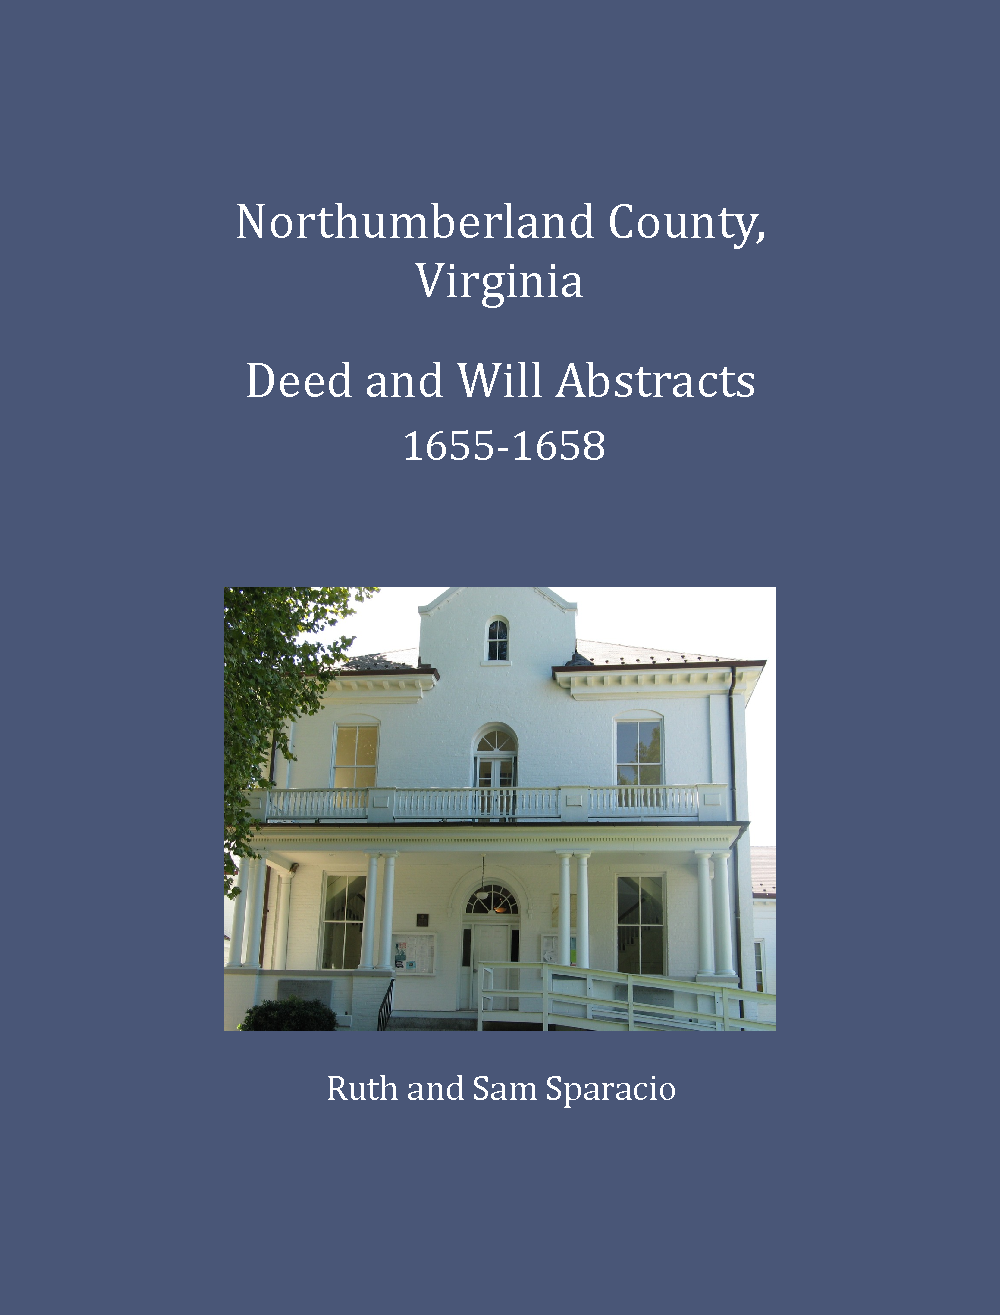 Northumberland County, Virginia Deed and Will Book, 1655-1658